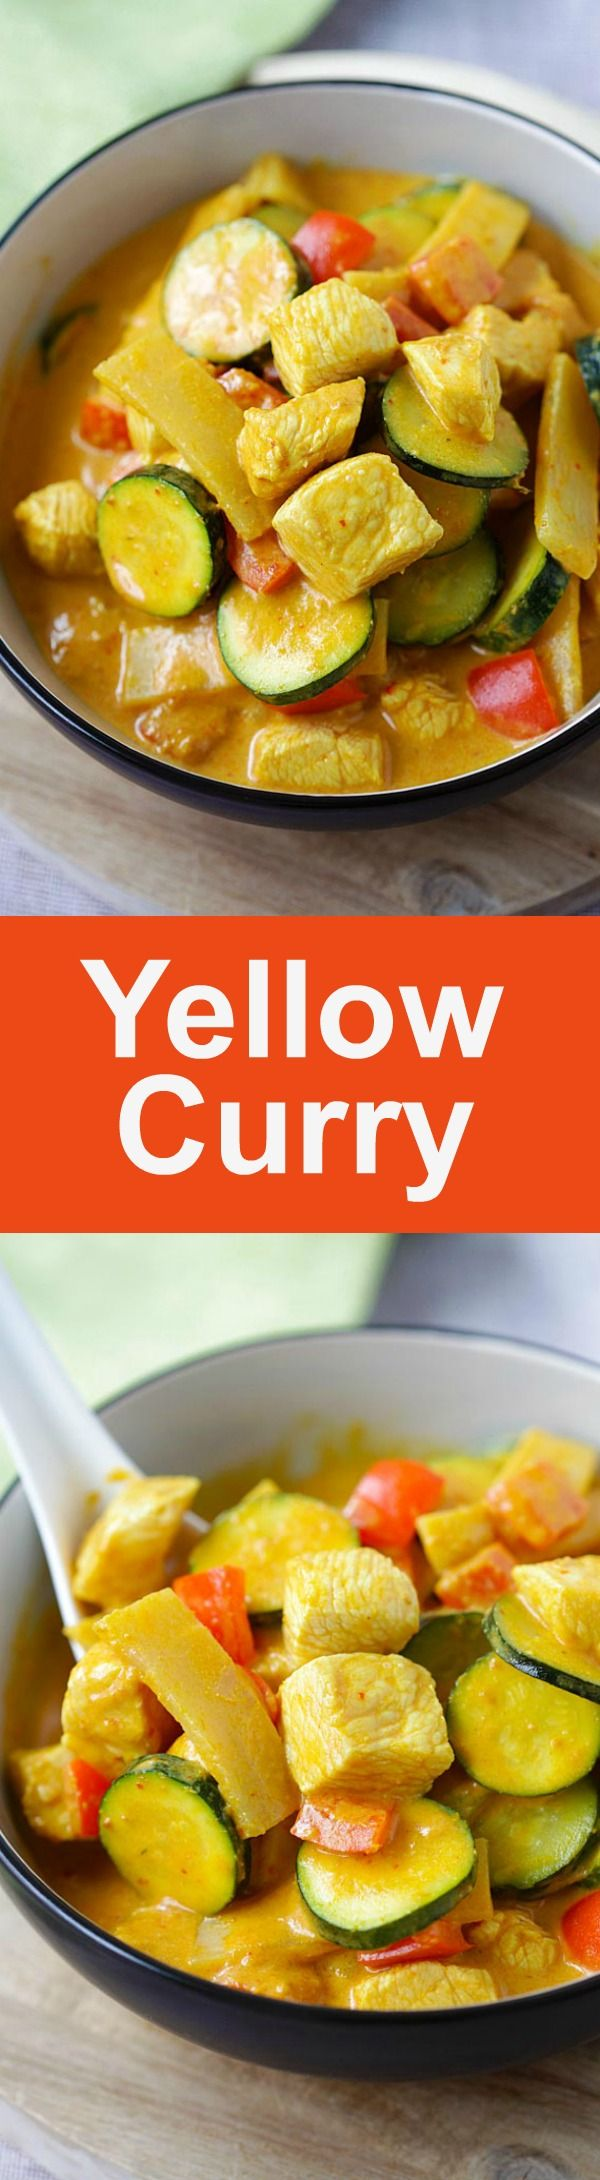 Thai Yellow Curry – creamy yellow curry recipe loaded with chicken, zucchini and bell peppers. So easy and much better than takeouts   rasamalaysia.com